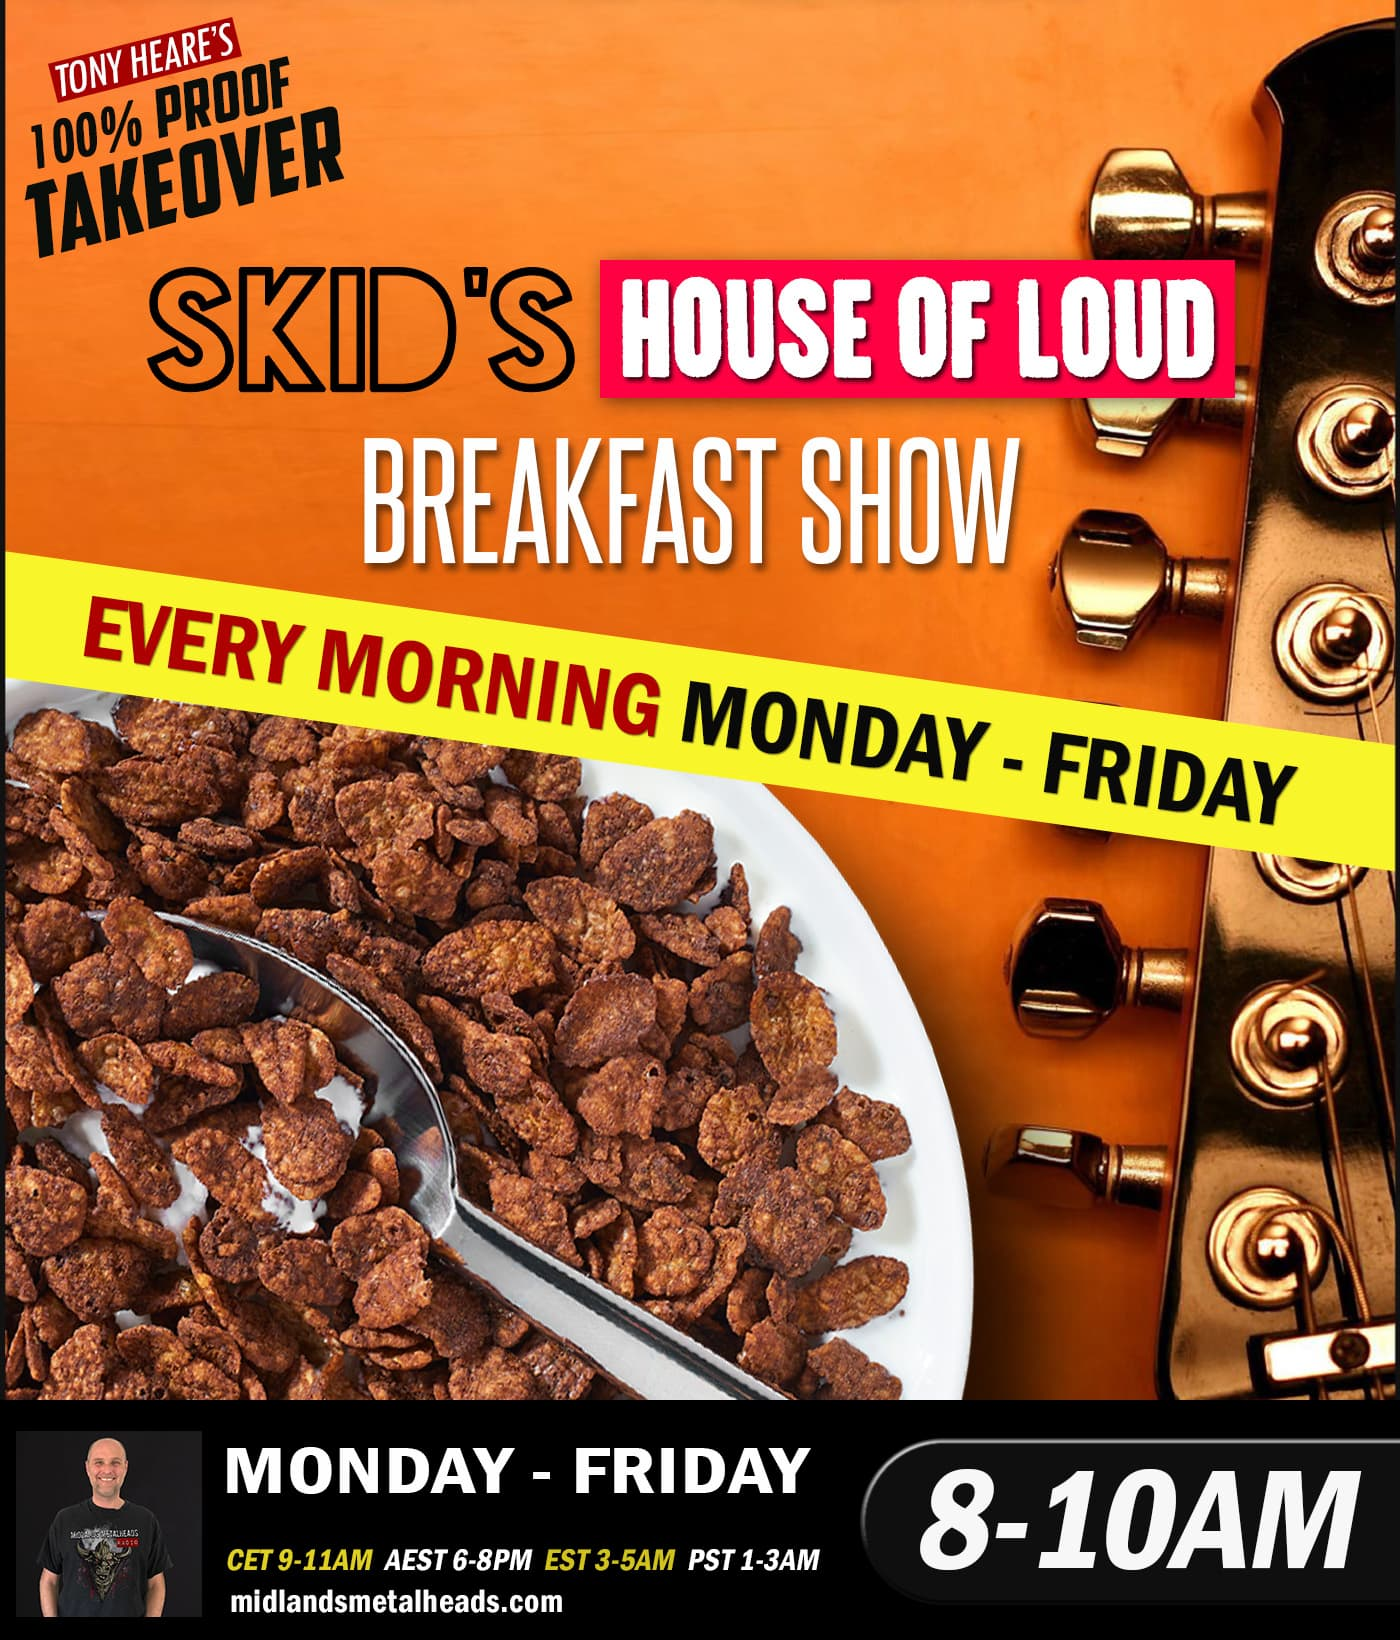 8 Pst To Aest the breakfast show 28.03.19 - skid special